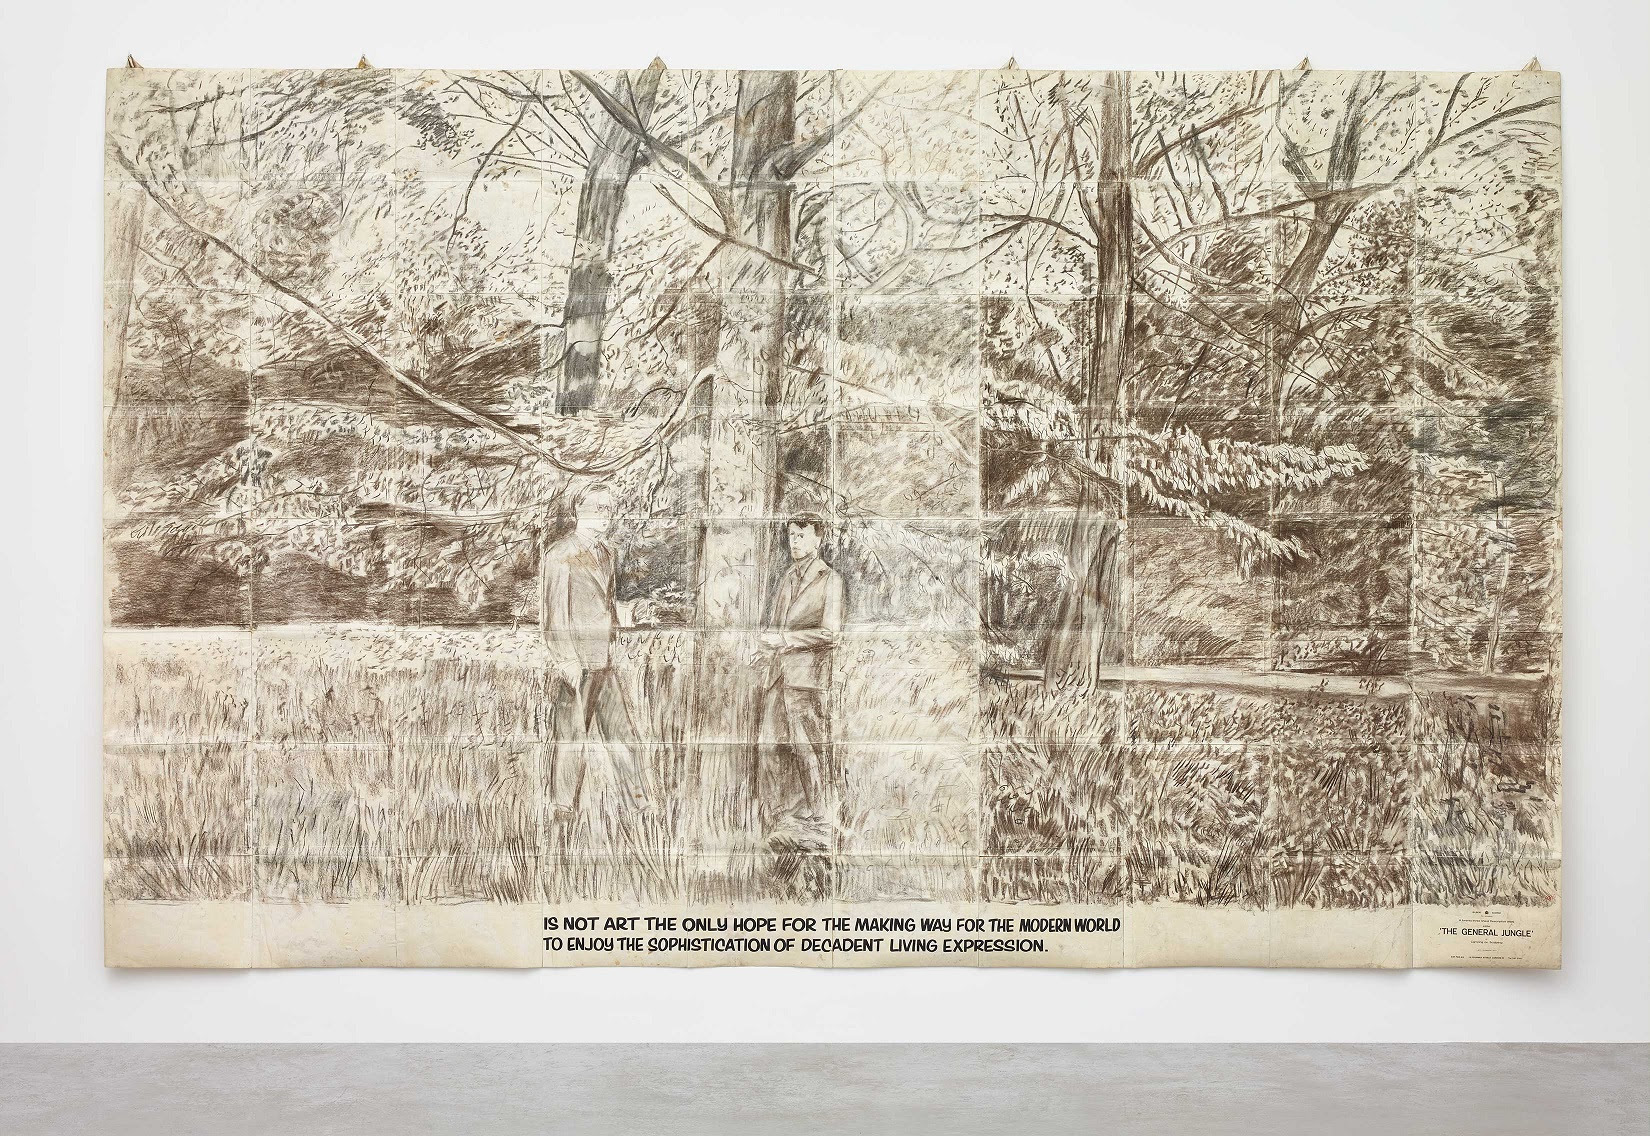 IS NOT ART THE ONLY HOPE FOR THE MAKING WAY FOR THE MODERN WORLD TO ENJOY THE SOPHISTICATION OF DECADENT LIVING EXPRESSION , 1971, charcoal on paper sculpture, 110 1/4 x 177 1/8 inches (280 x 450 cm). Private collection. Photo by Stephen White. © 2017 Gilbert & George ?